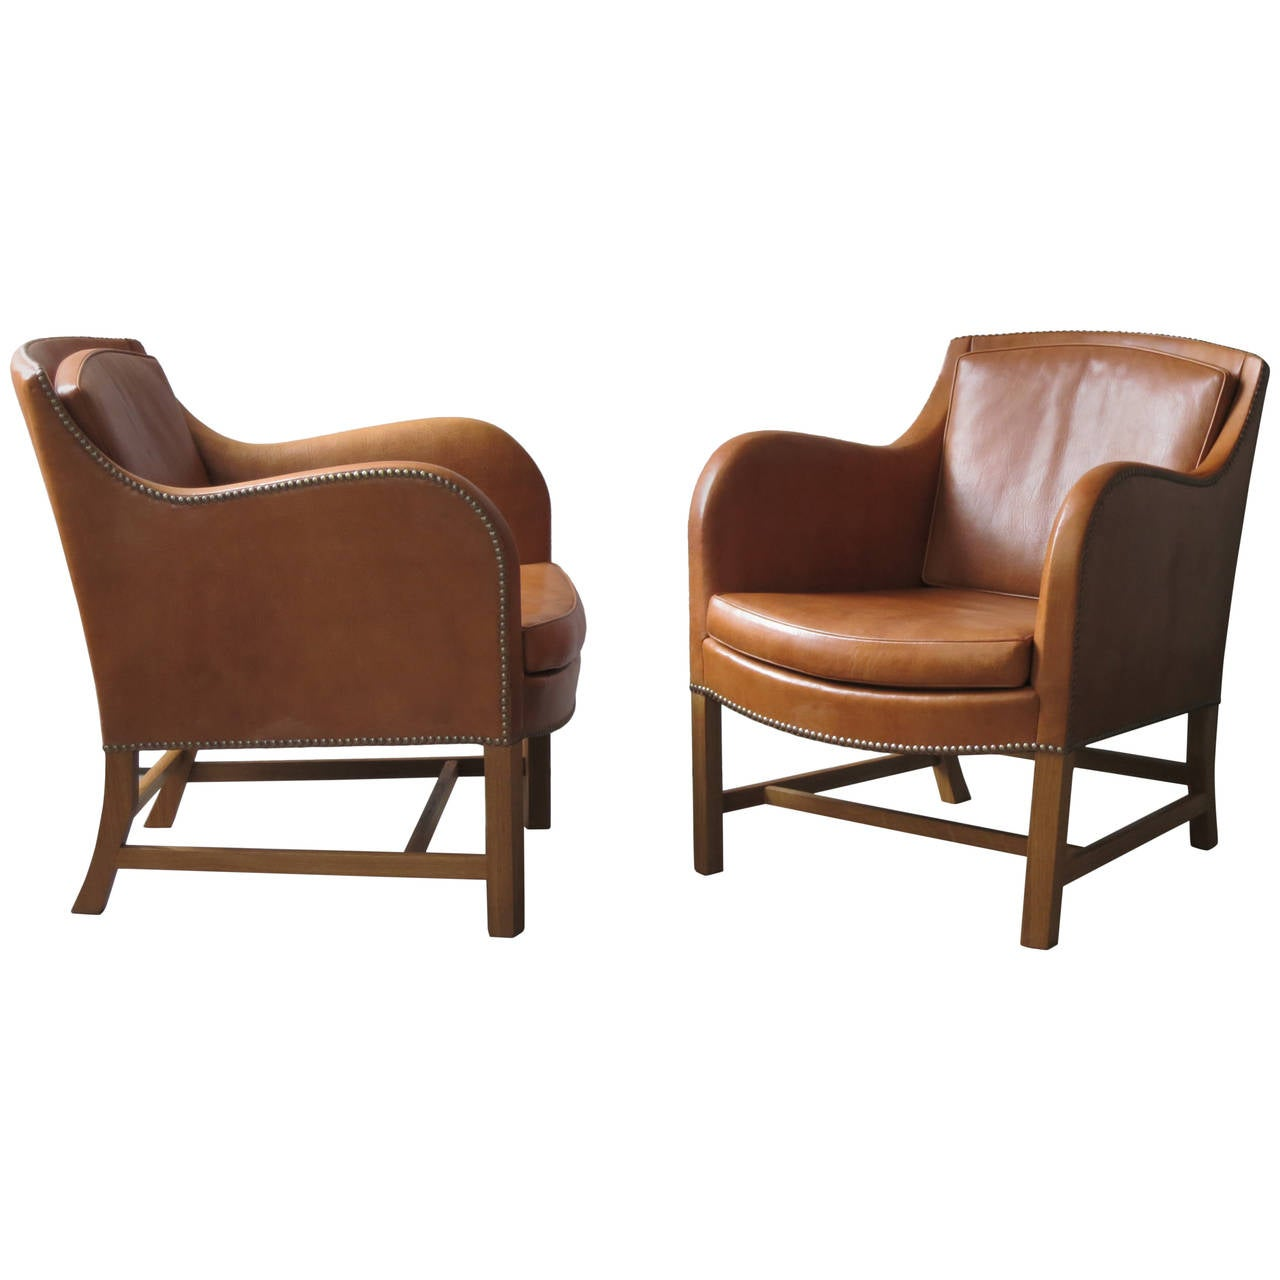 "Pair of ""Mix"" Chairs in Nigerian Goatskin with Brass Nailheads by Kaare Klint For Sale"